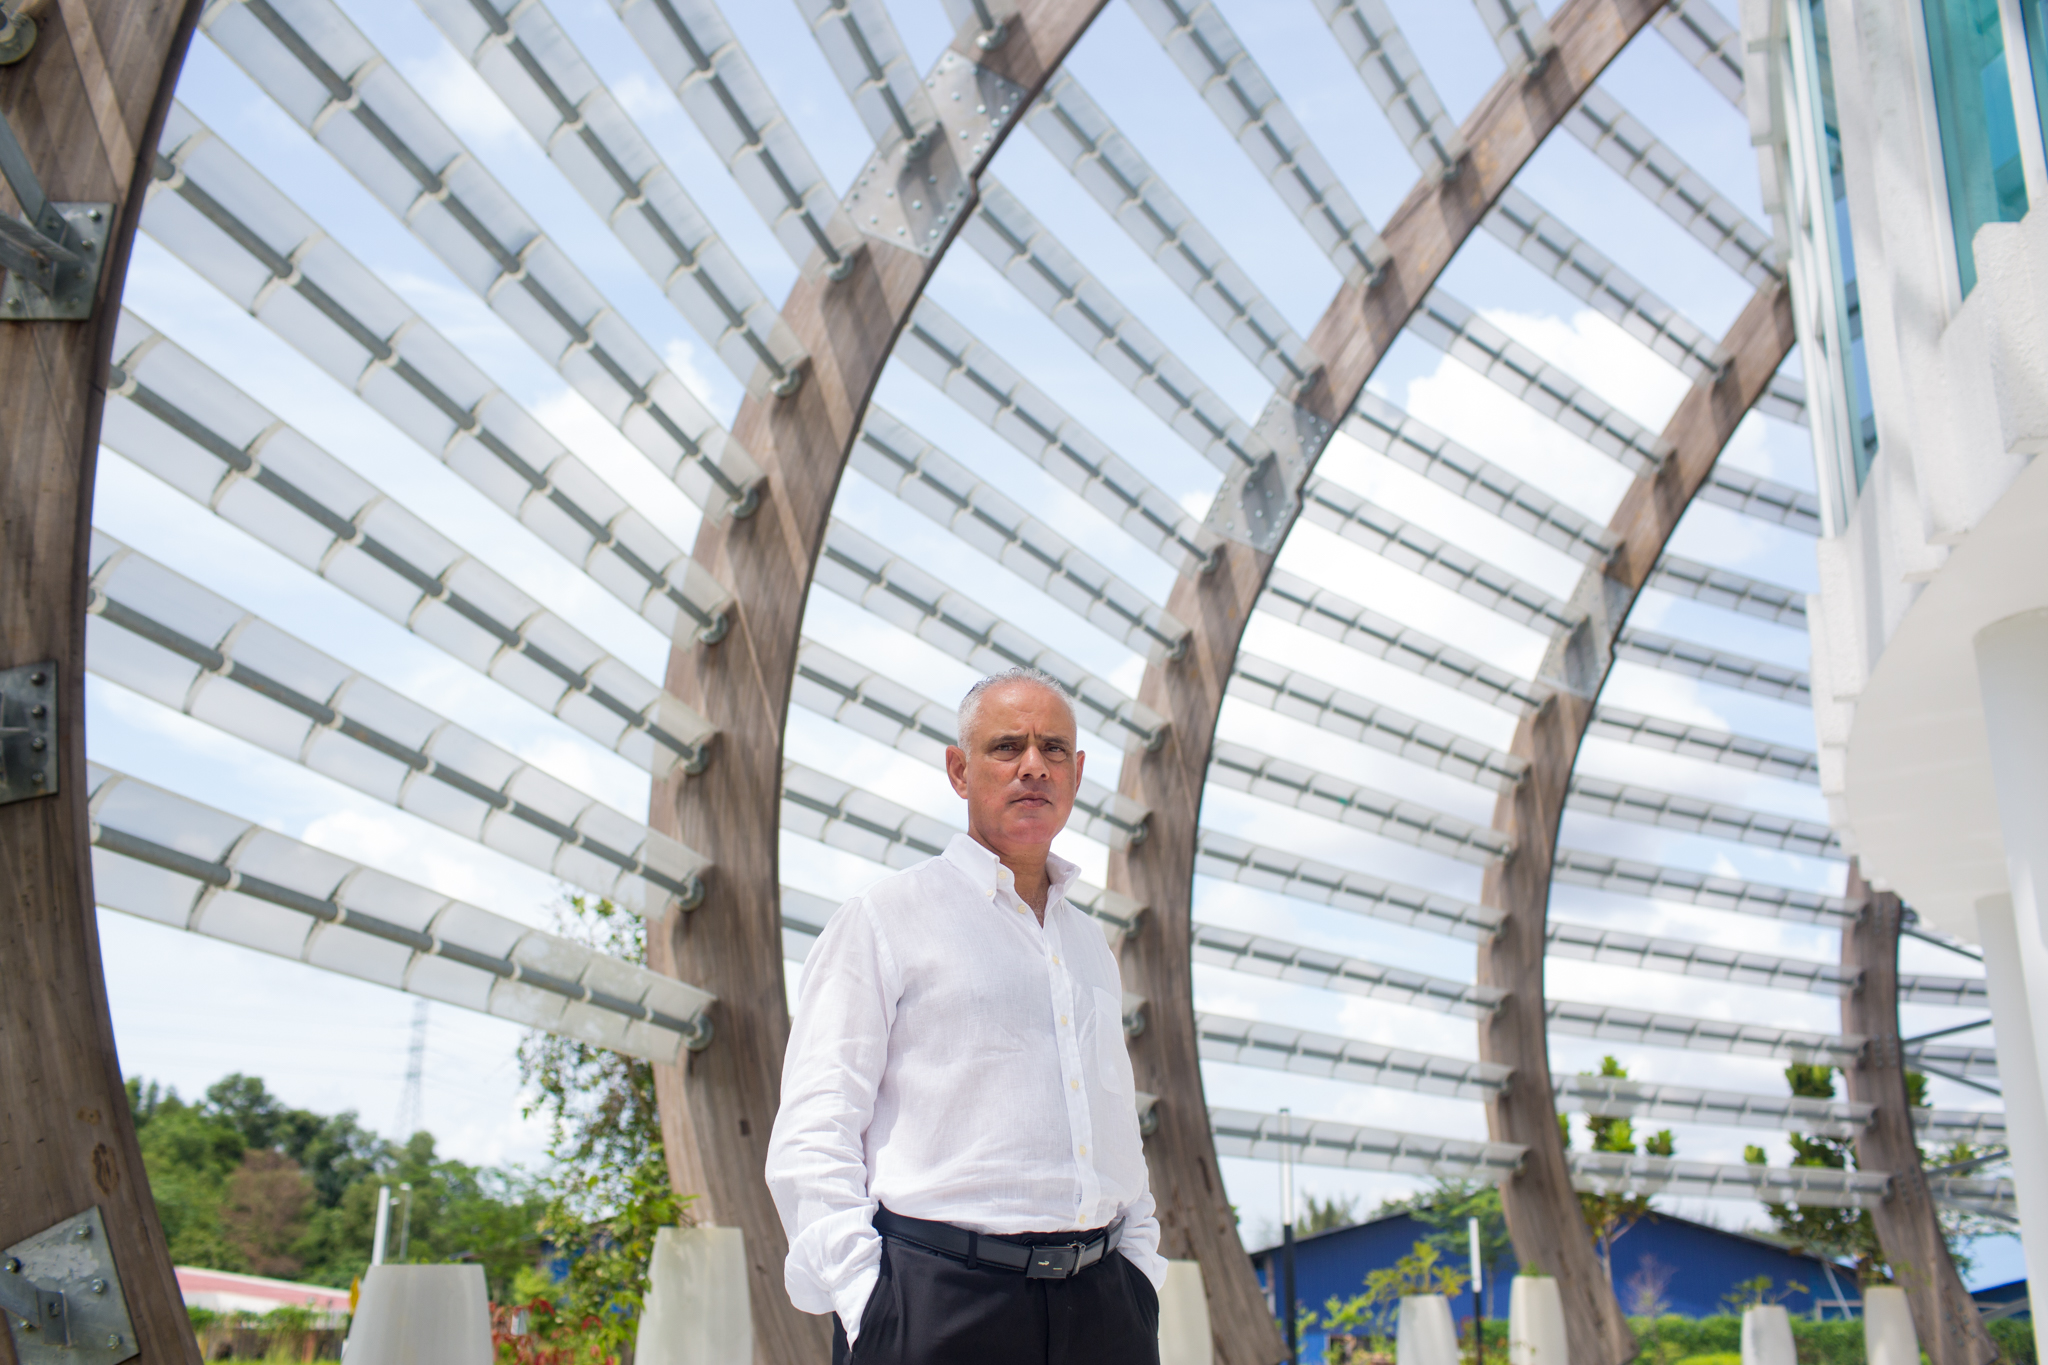 Sayed Azam-Ali, director of Crops for the Future, stands inside one of the domes that house the research institute. The energy-efficient structures, Azam-Ali says, embody the sustainable future of agriculture.